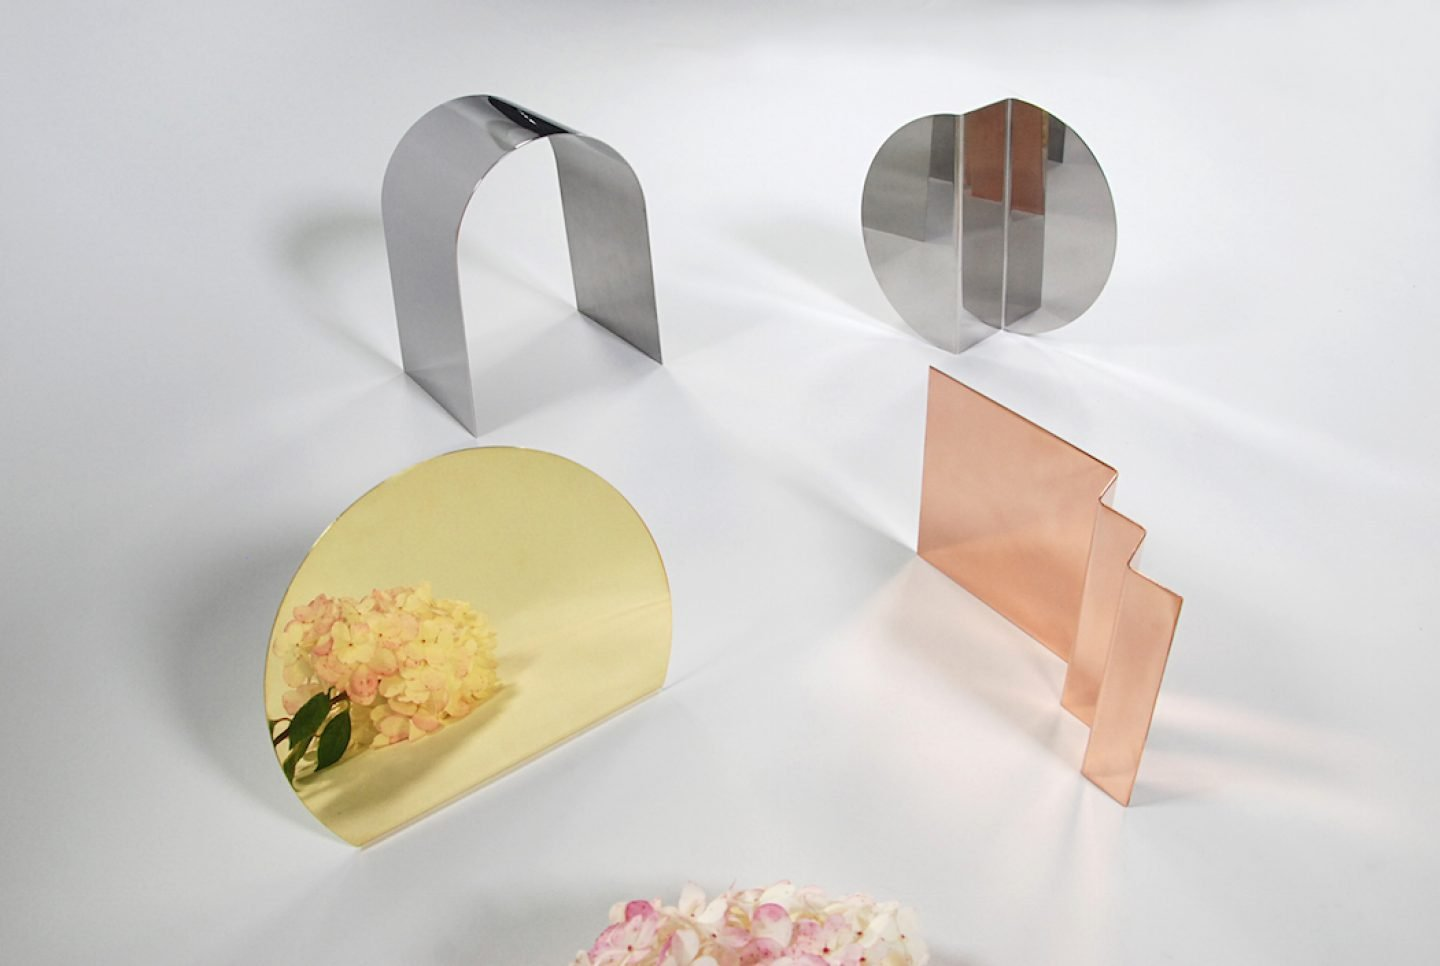 ninacho_design-Bent Mirror Series by Nina Cho1